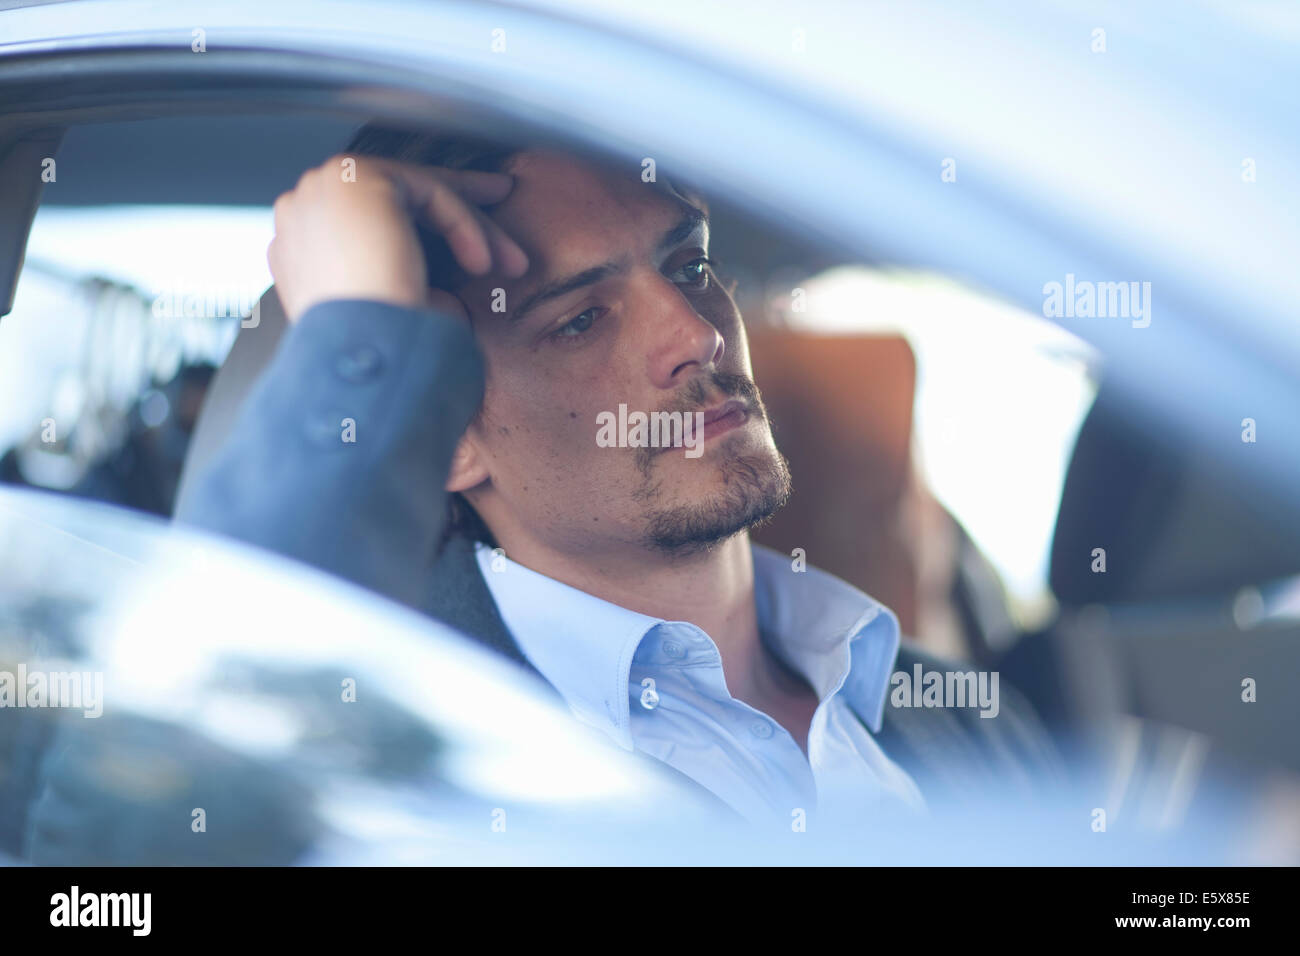 Mid adult businessman driving in traffic congestion - Stock Image